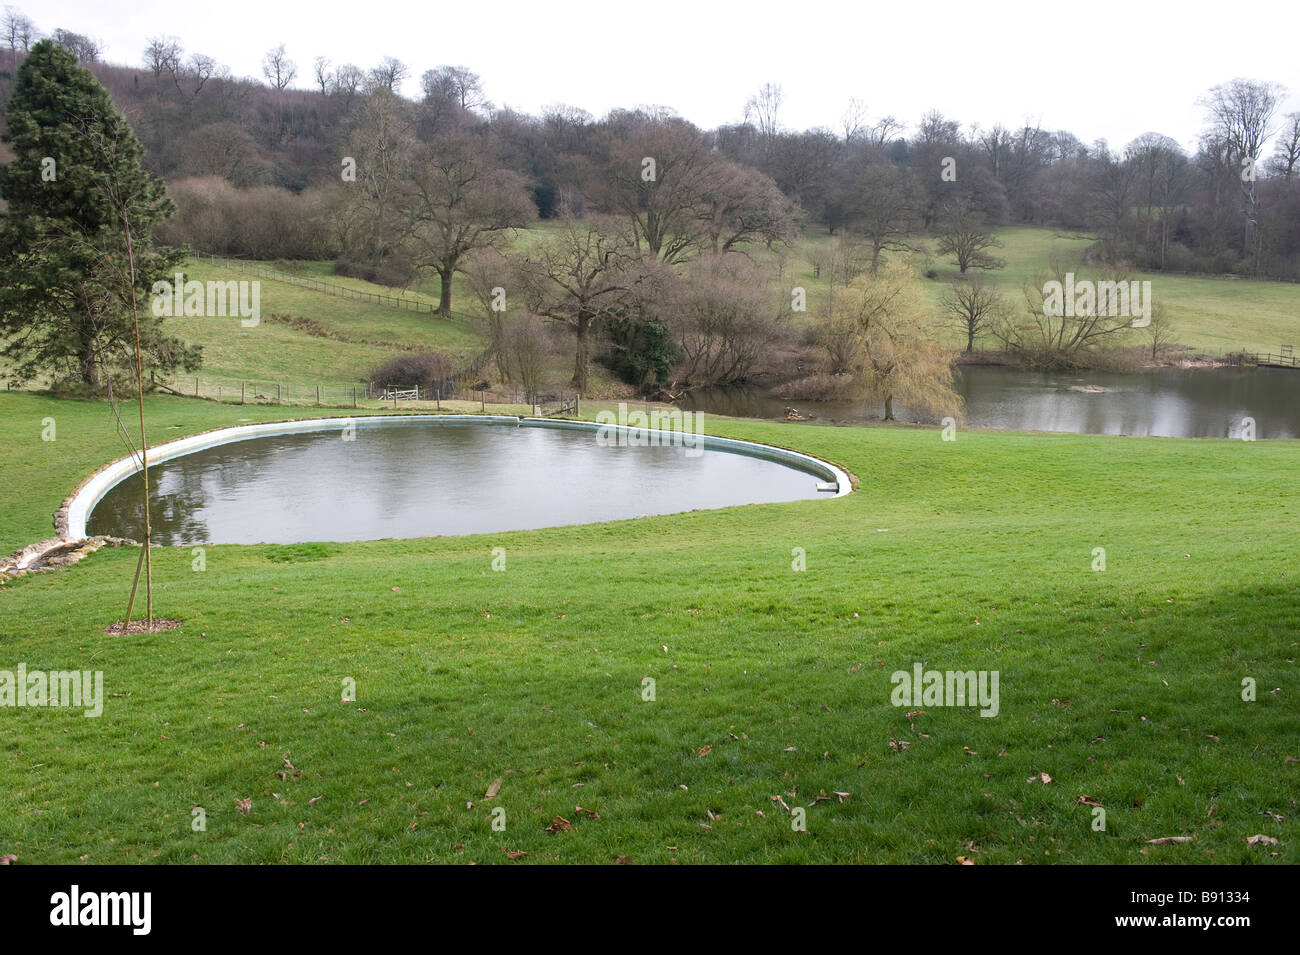 the swimming pool at chartwell family home and garden of sir winston stock photo royalty free